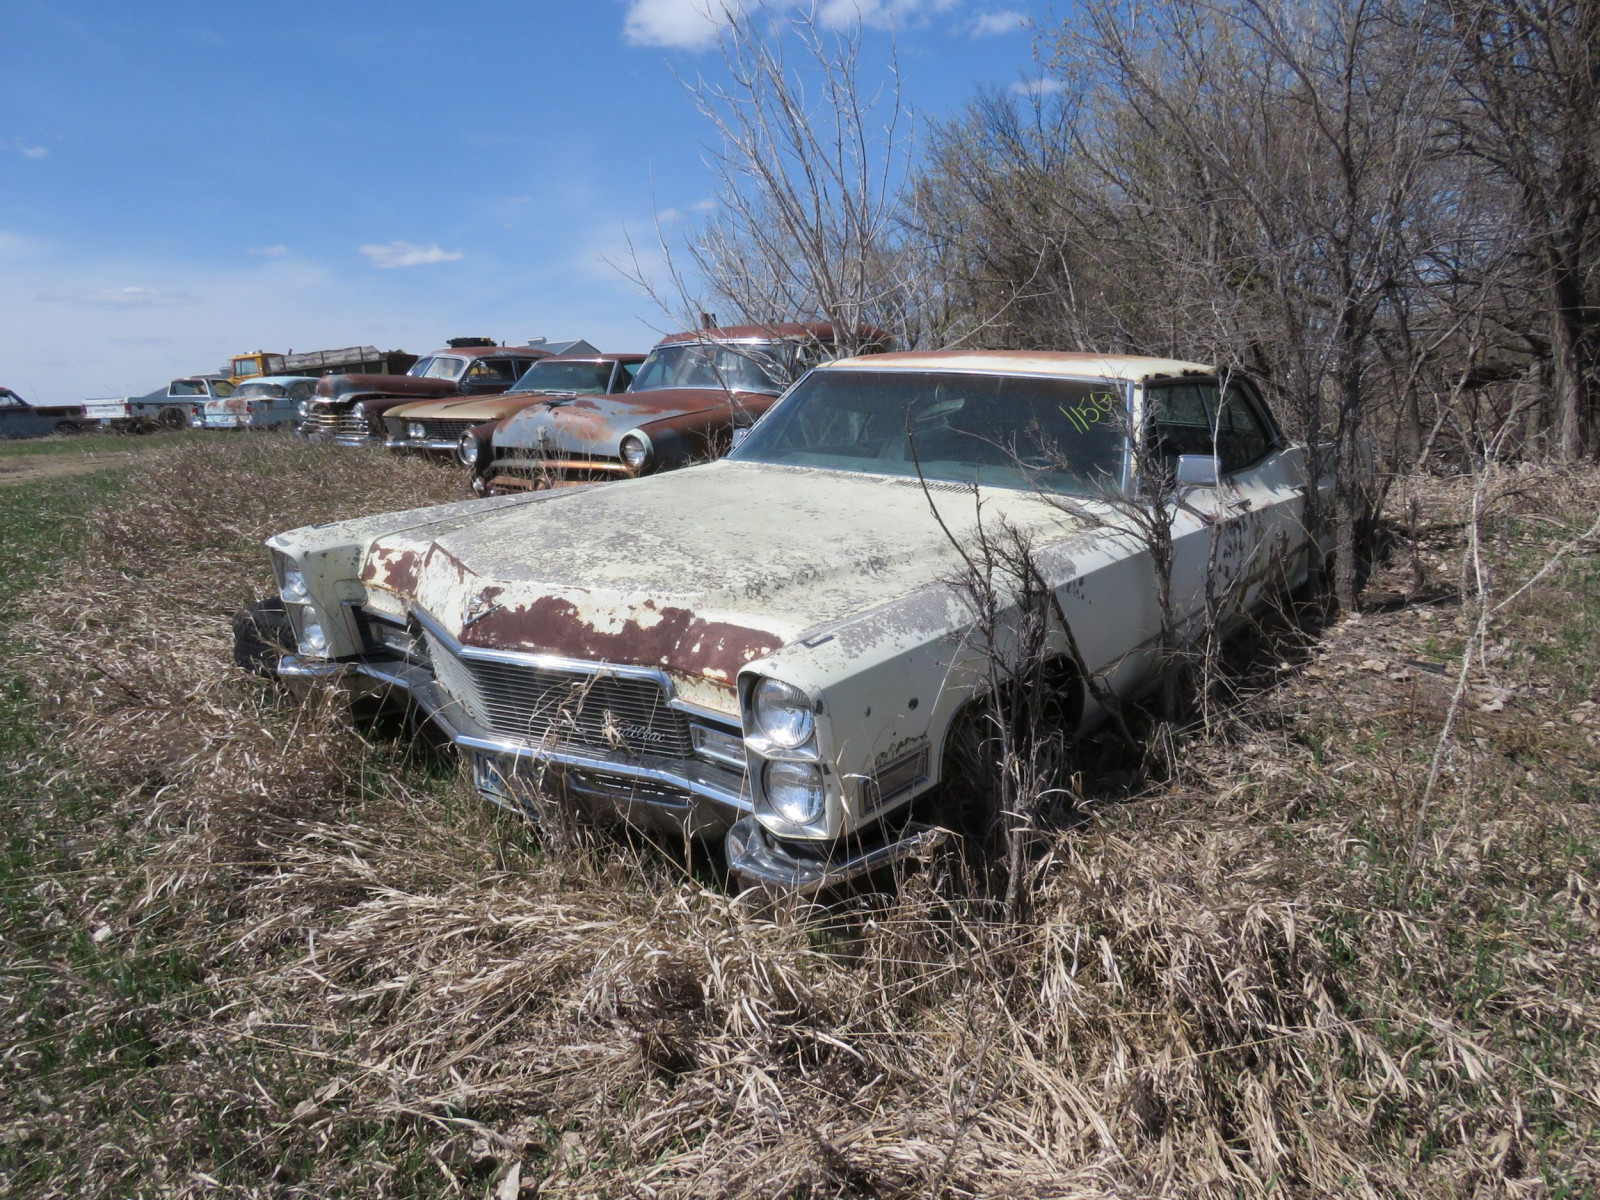 1965 Cadillac 4dr HT for Project or parts - Image 1